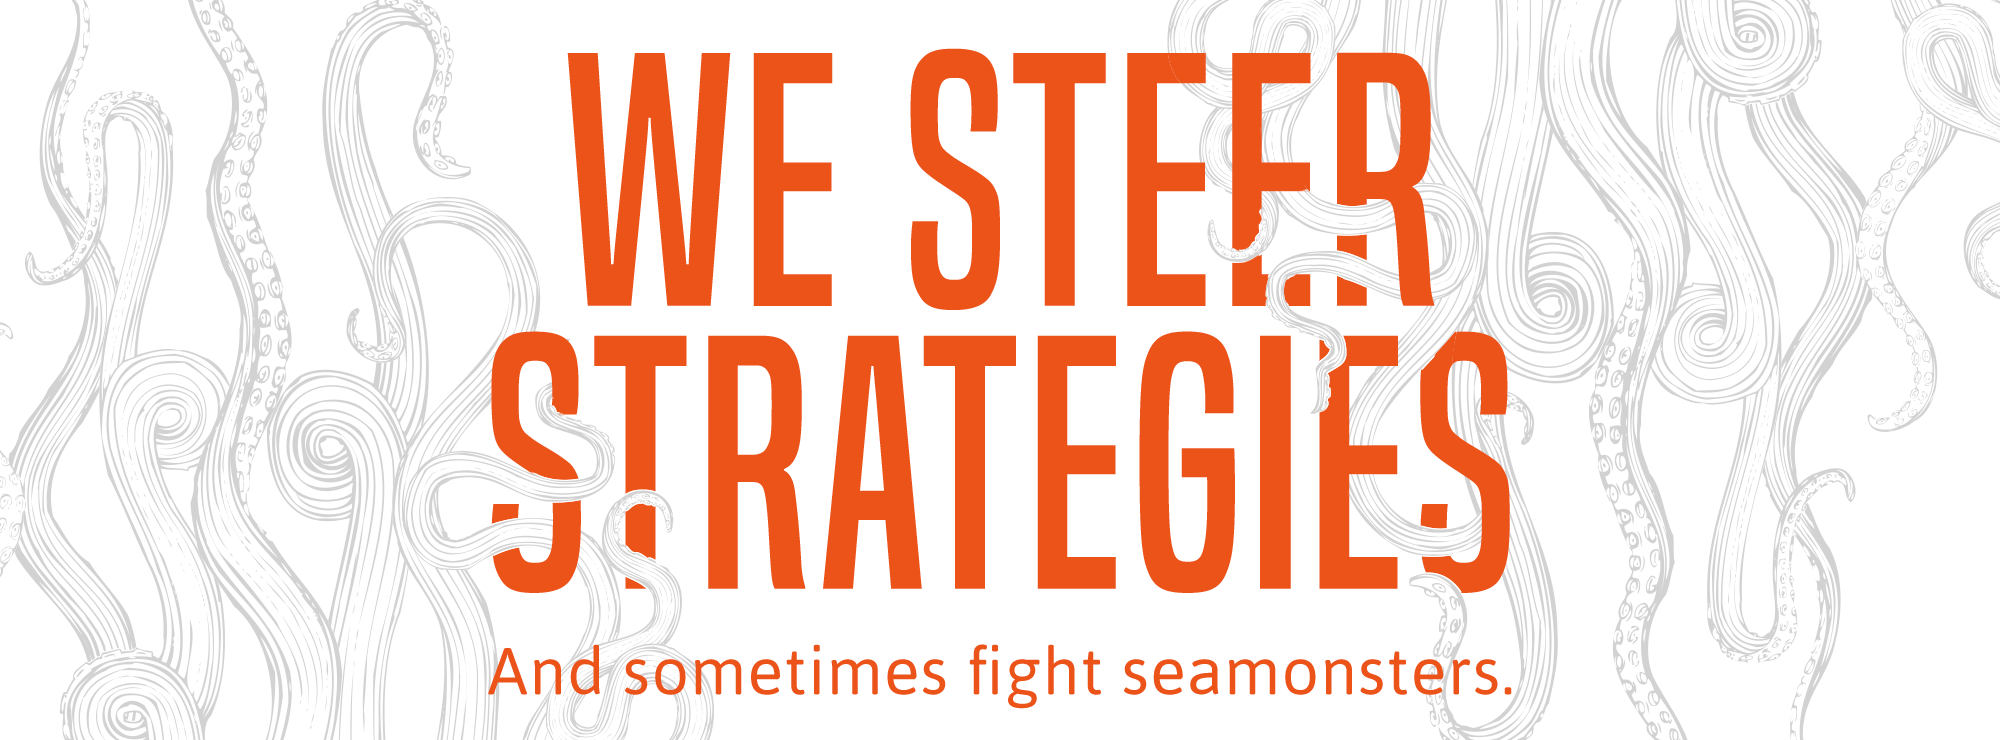 We Steer Strategies. And sometimes fight seamonsters.